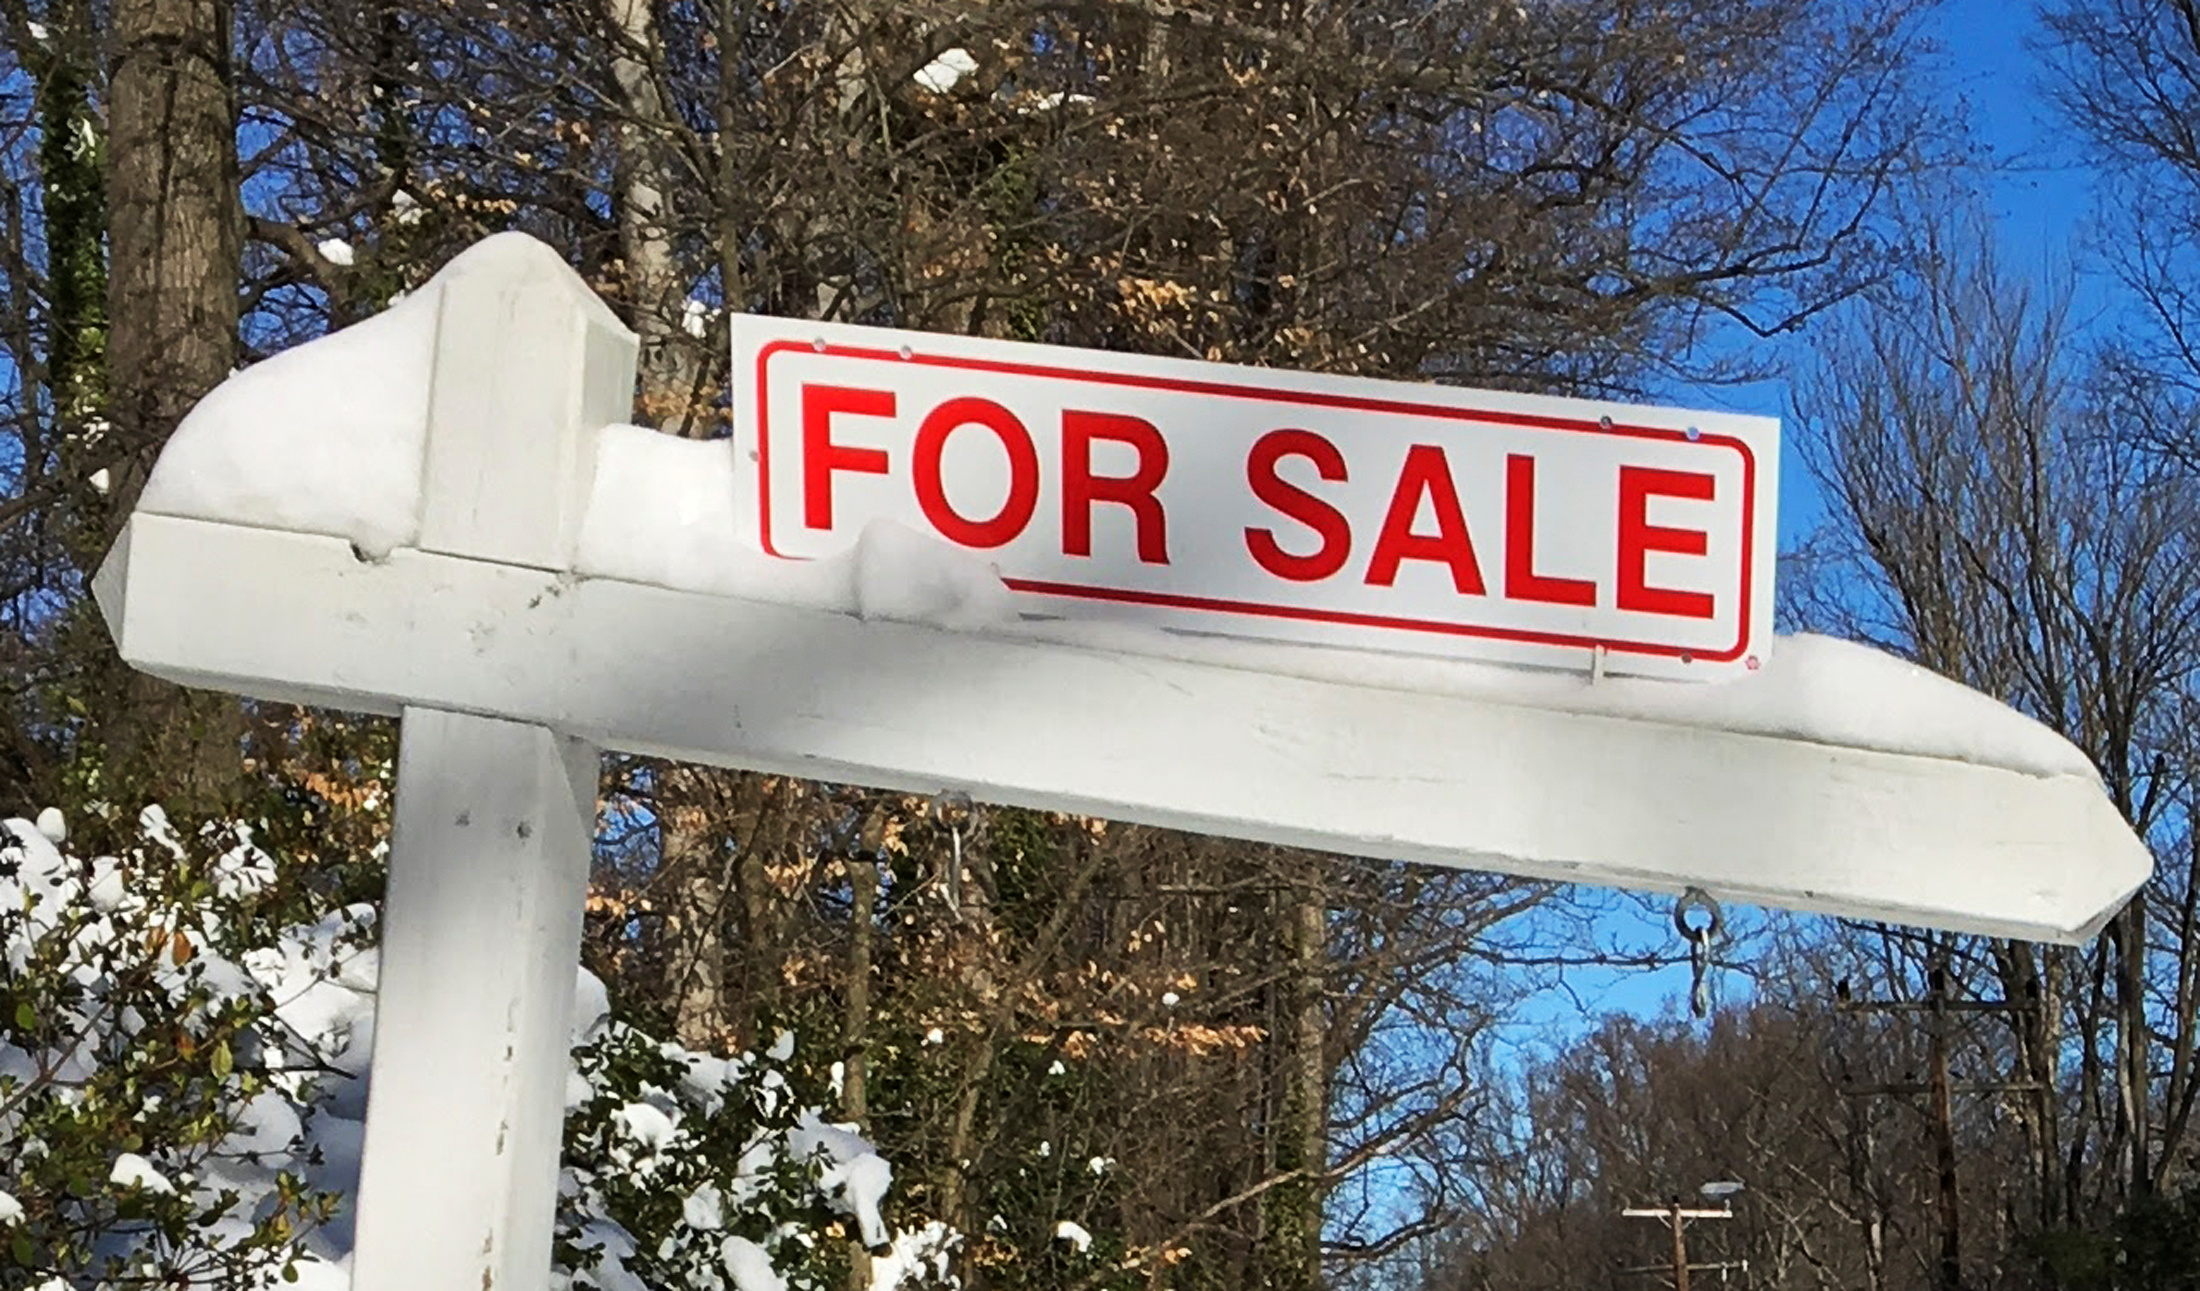 A house-for-sale sign is seen inside the Washington DC Beltway in Annandale, Virginia January 24, 2016.  REUTERS/Hyungwon Kang